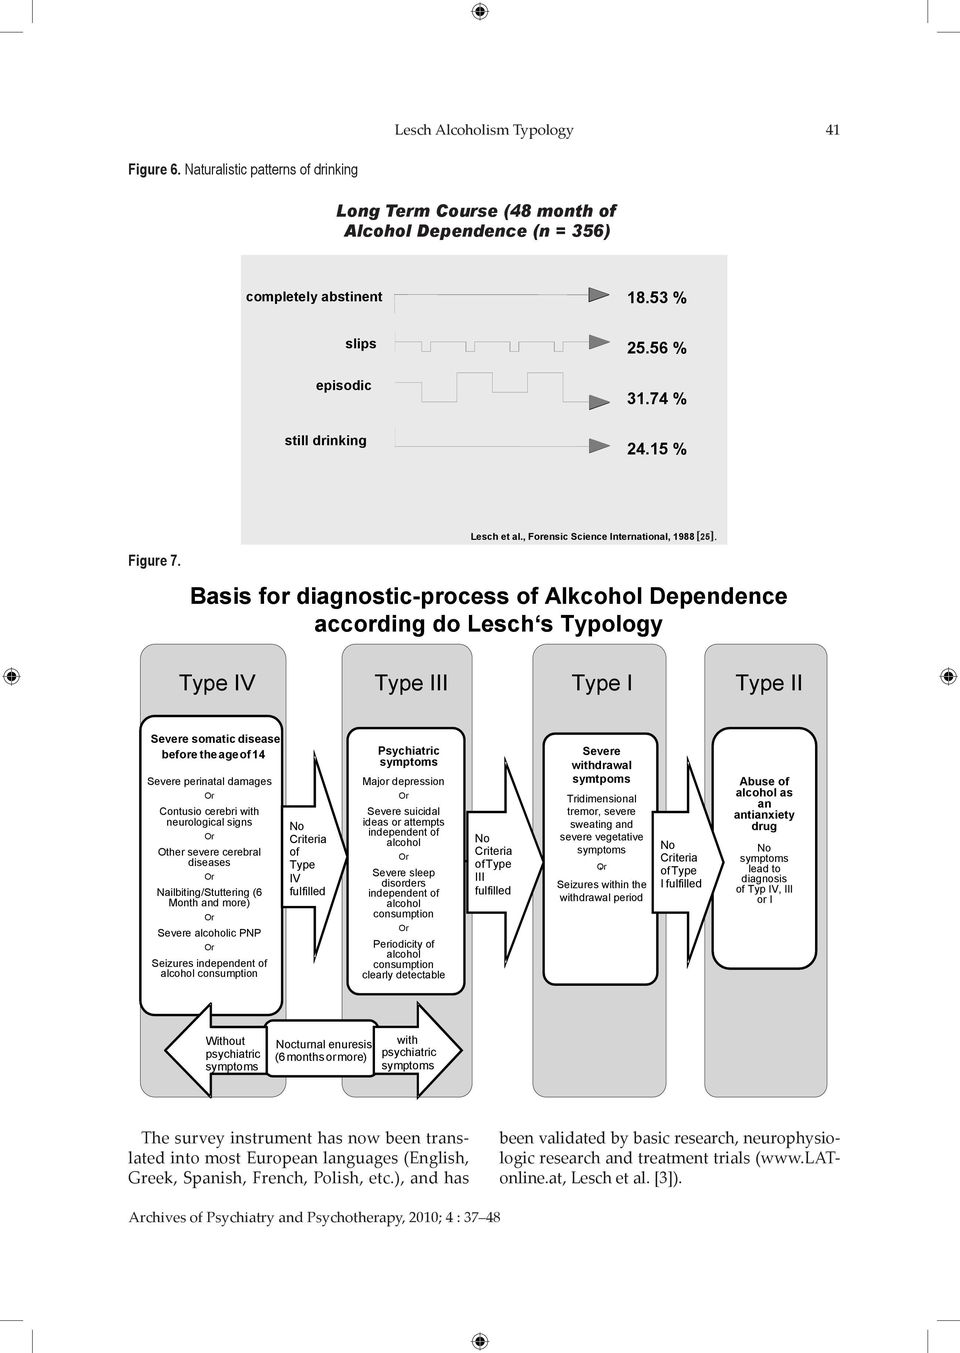 Basis for diagnostic-process of Alkcohol Dependence according do Lesch s Typology Type IV Type III Type I Type II Severe somatic disease before the ageof14 Severe perinatal damages Contusio cerebri